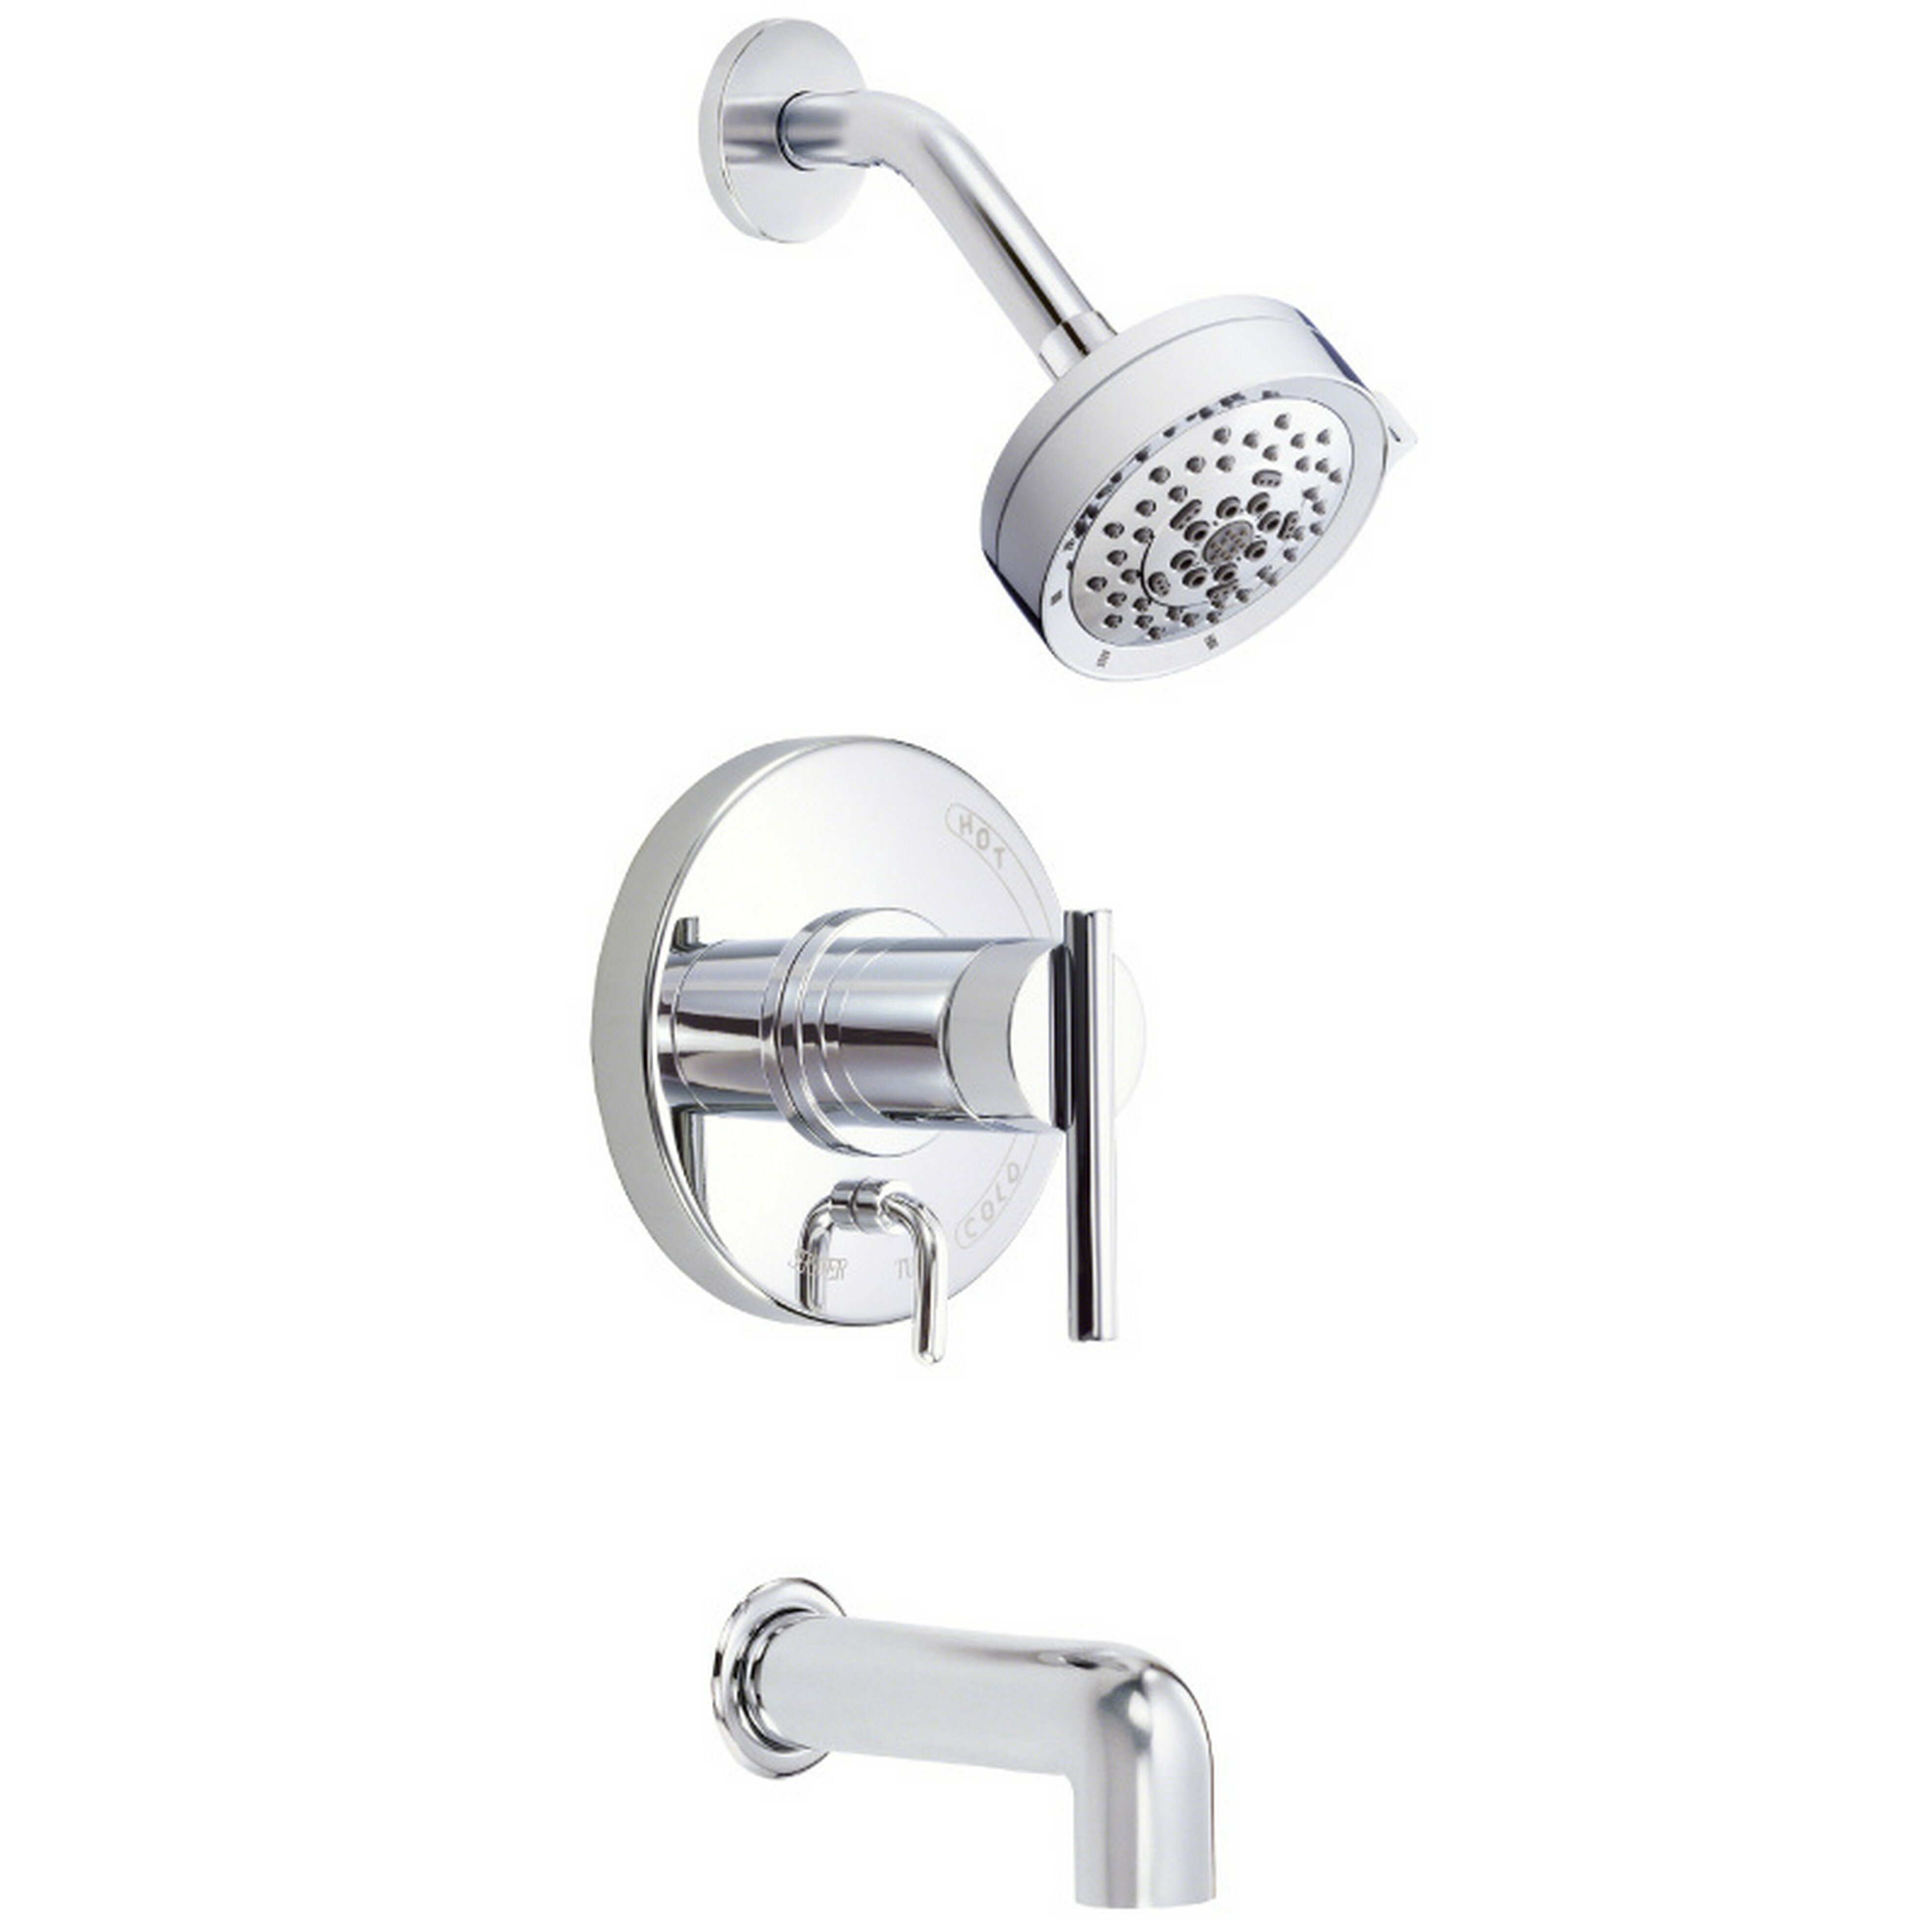 Danze Bathroom Accessories Danze Parma Tub And Shower Faucet Reviews Wayfair